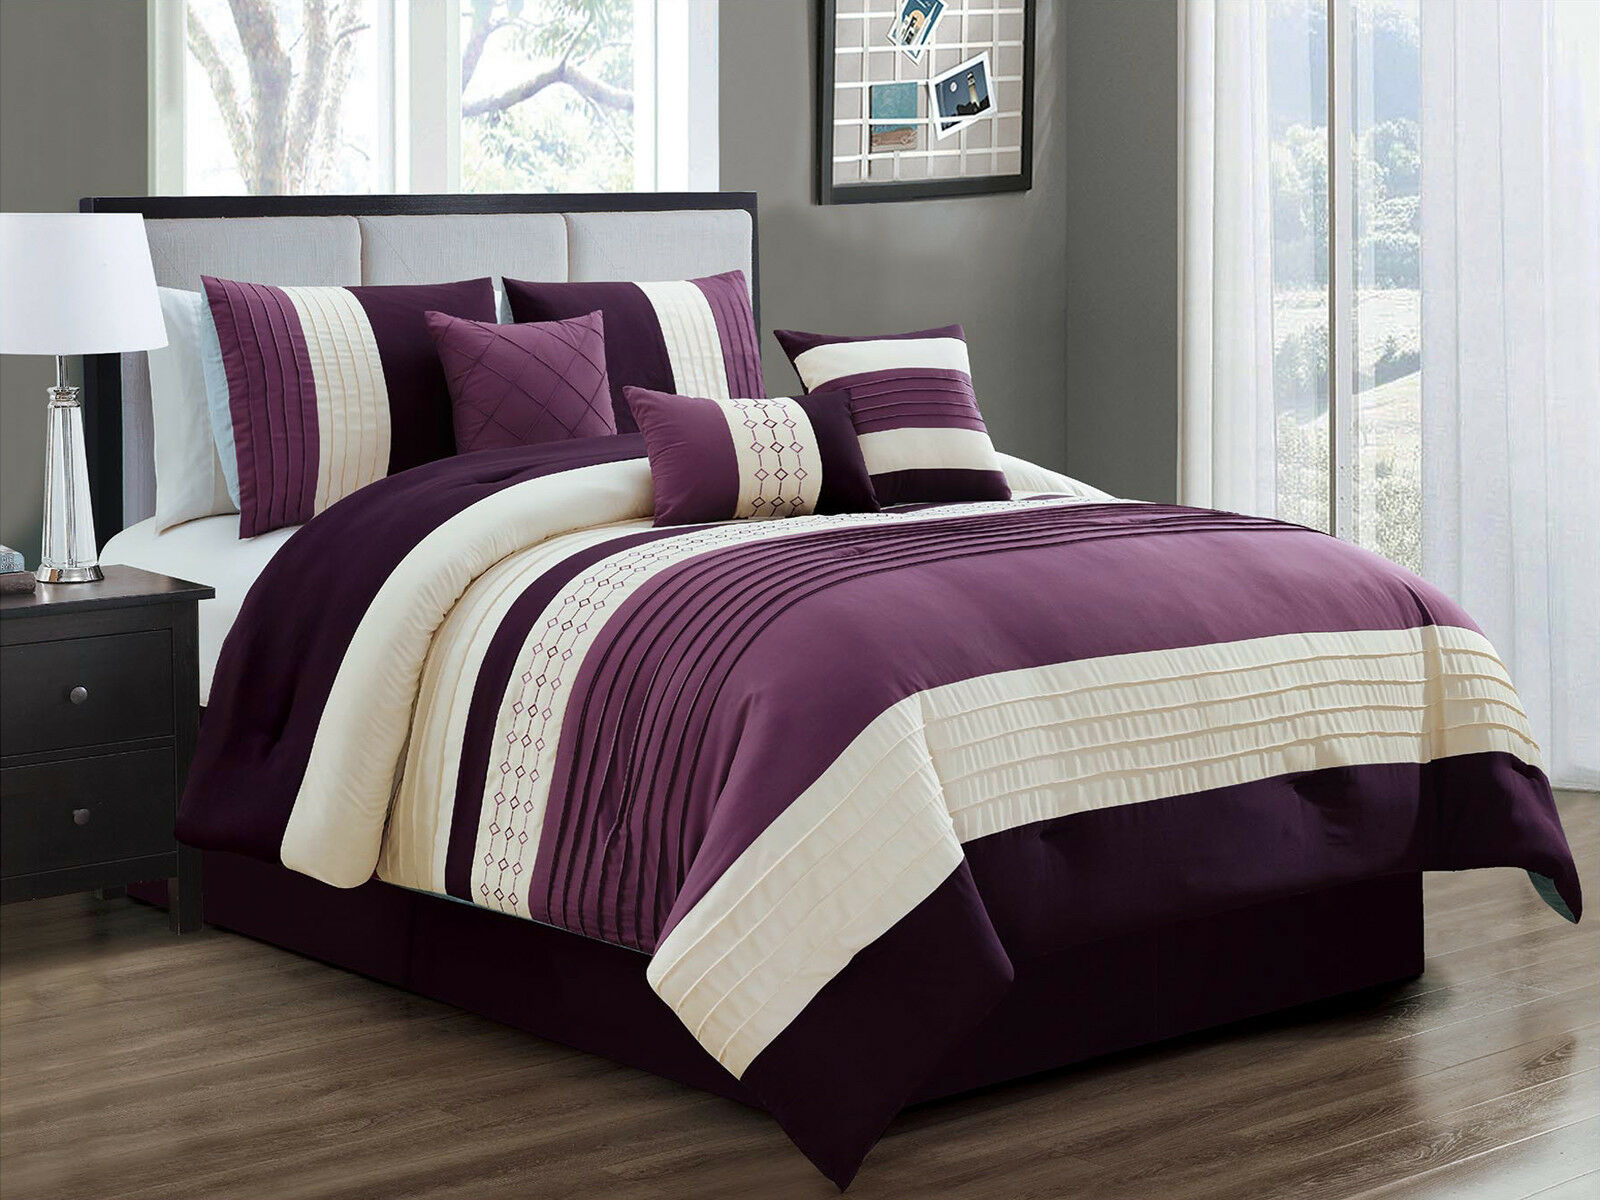 11-Pc Yuma Diamond Southwest Comforter Curtain Set Purple Lavender Beige Queen